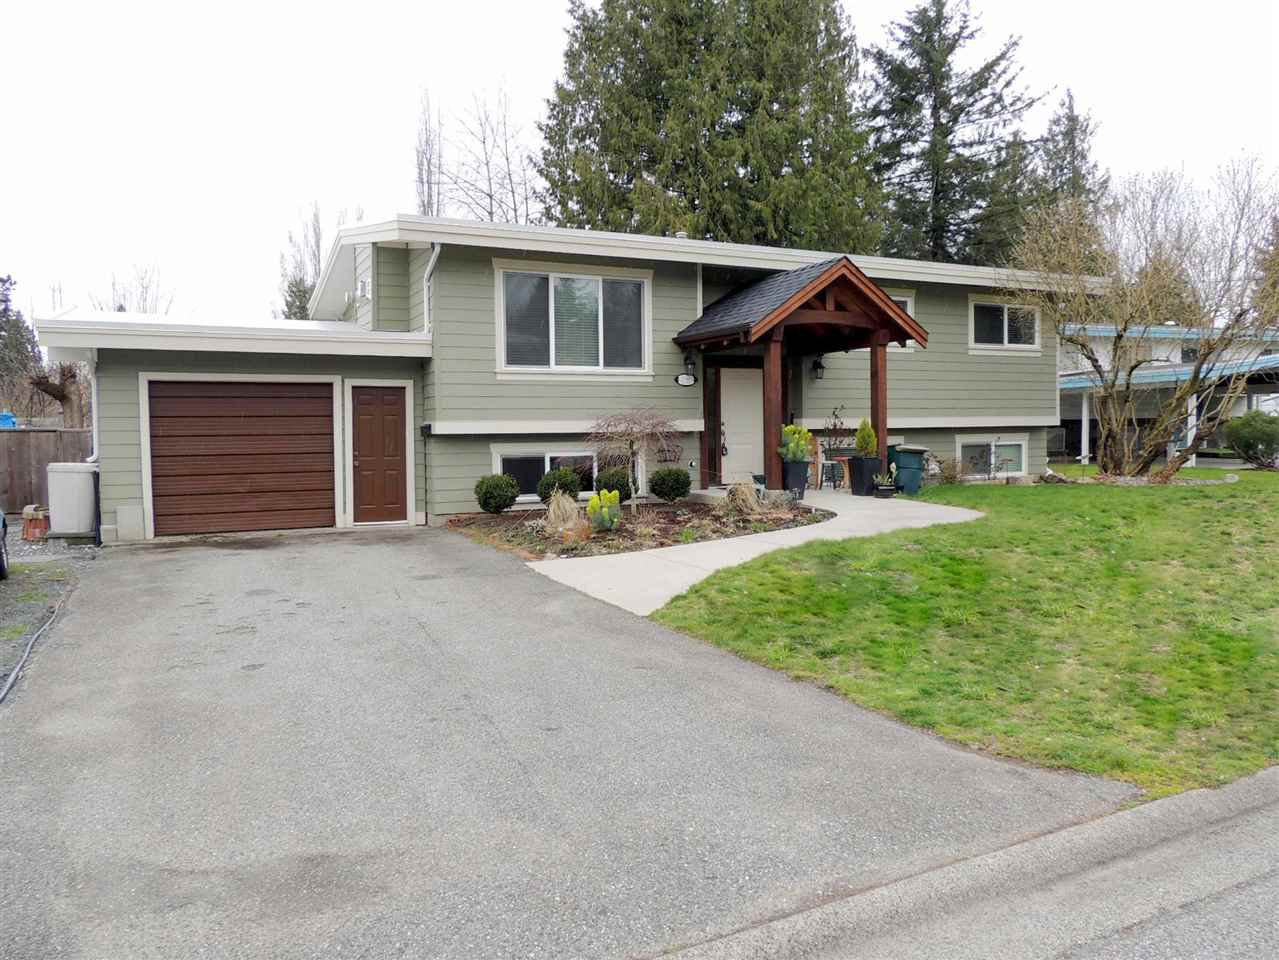 Main Photo: 2161 MOWBRAY COURT in : Abbotsford East House for sale : MLS®# R2249987